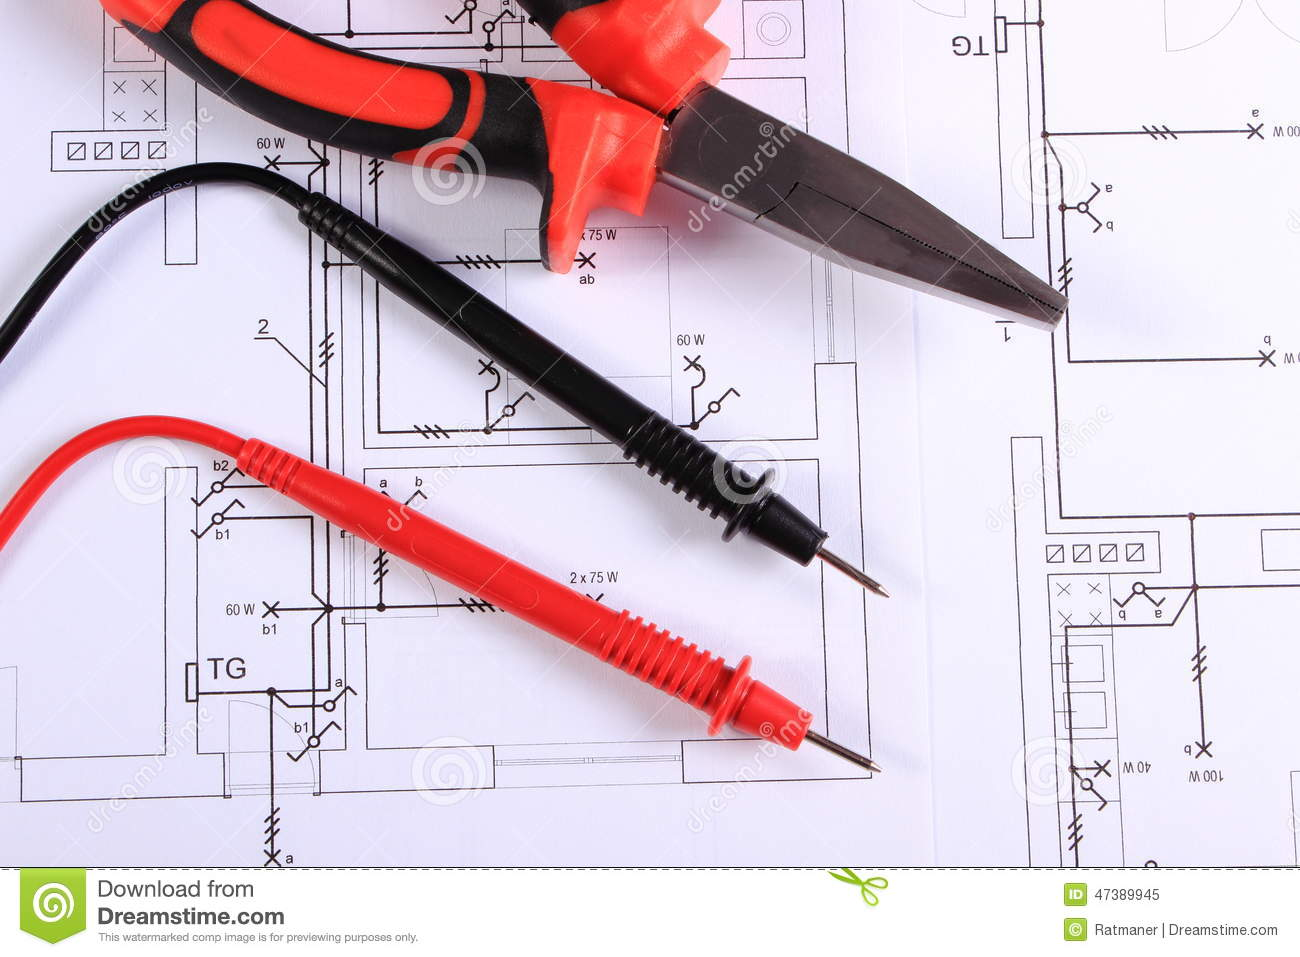 Cables Of Multimeter And Work Tool On Construction Drawing Stock Electrical House Metal Pliers Lying Drawings Tools For Engineer Jobs